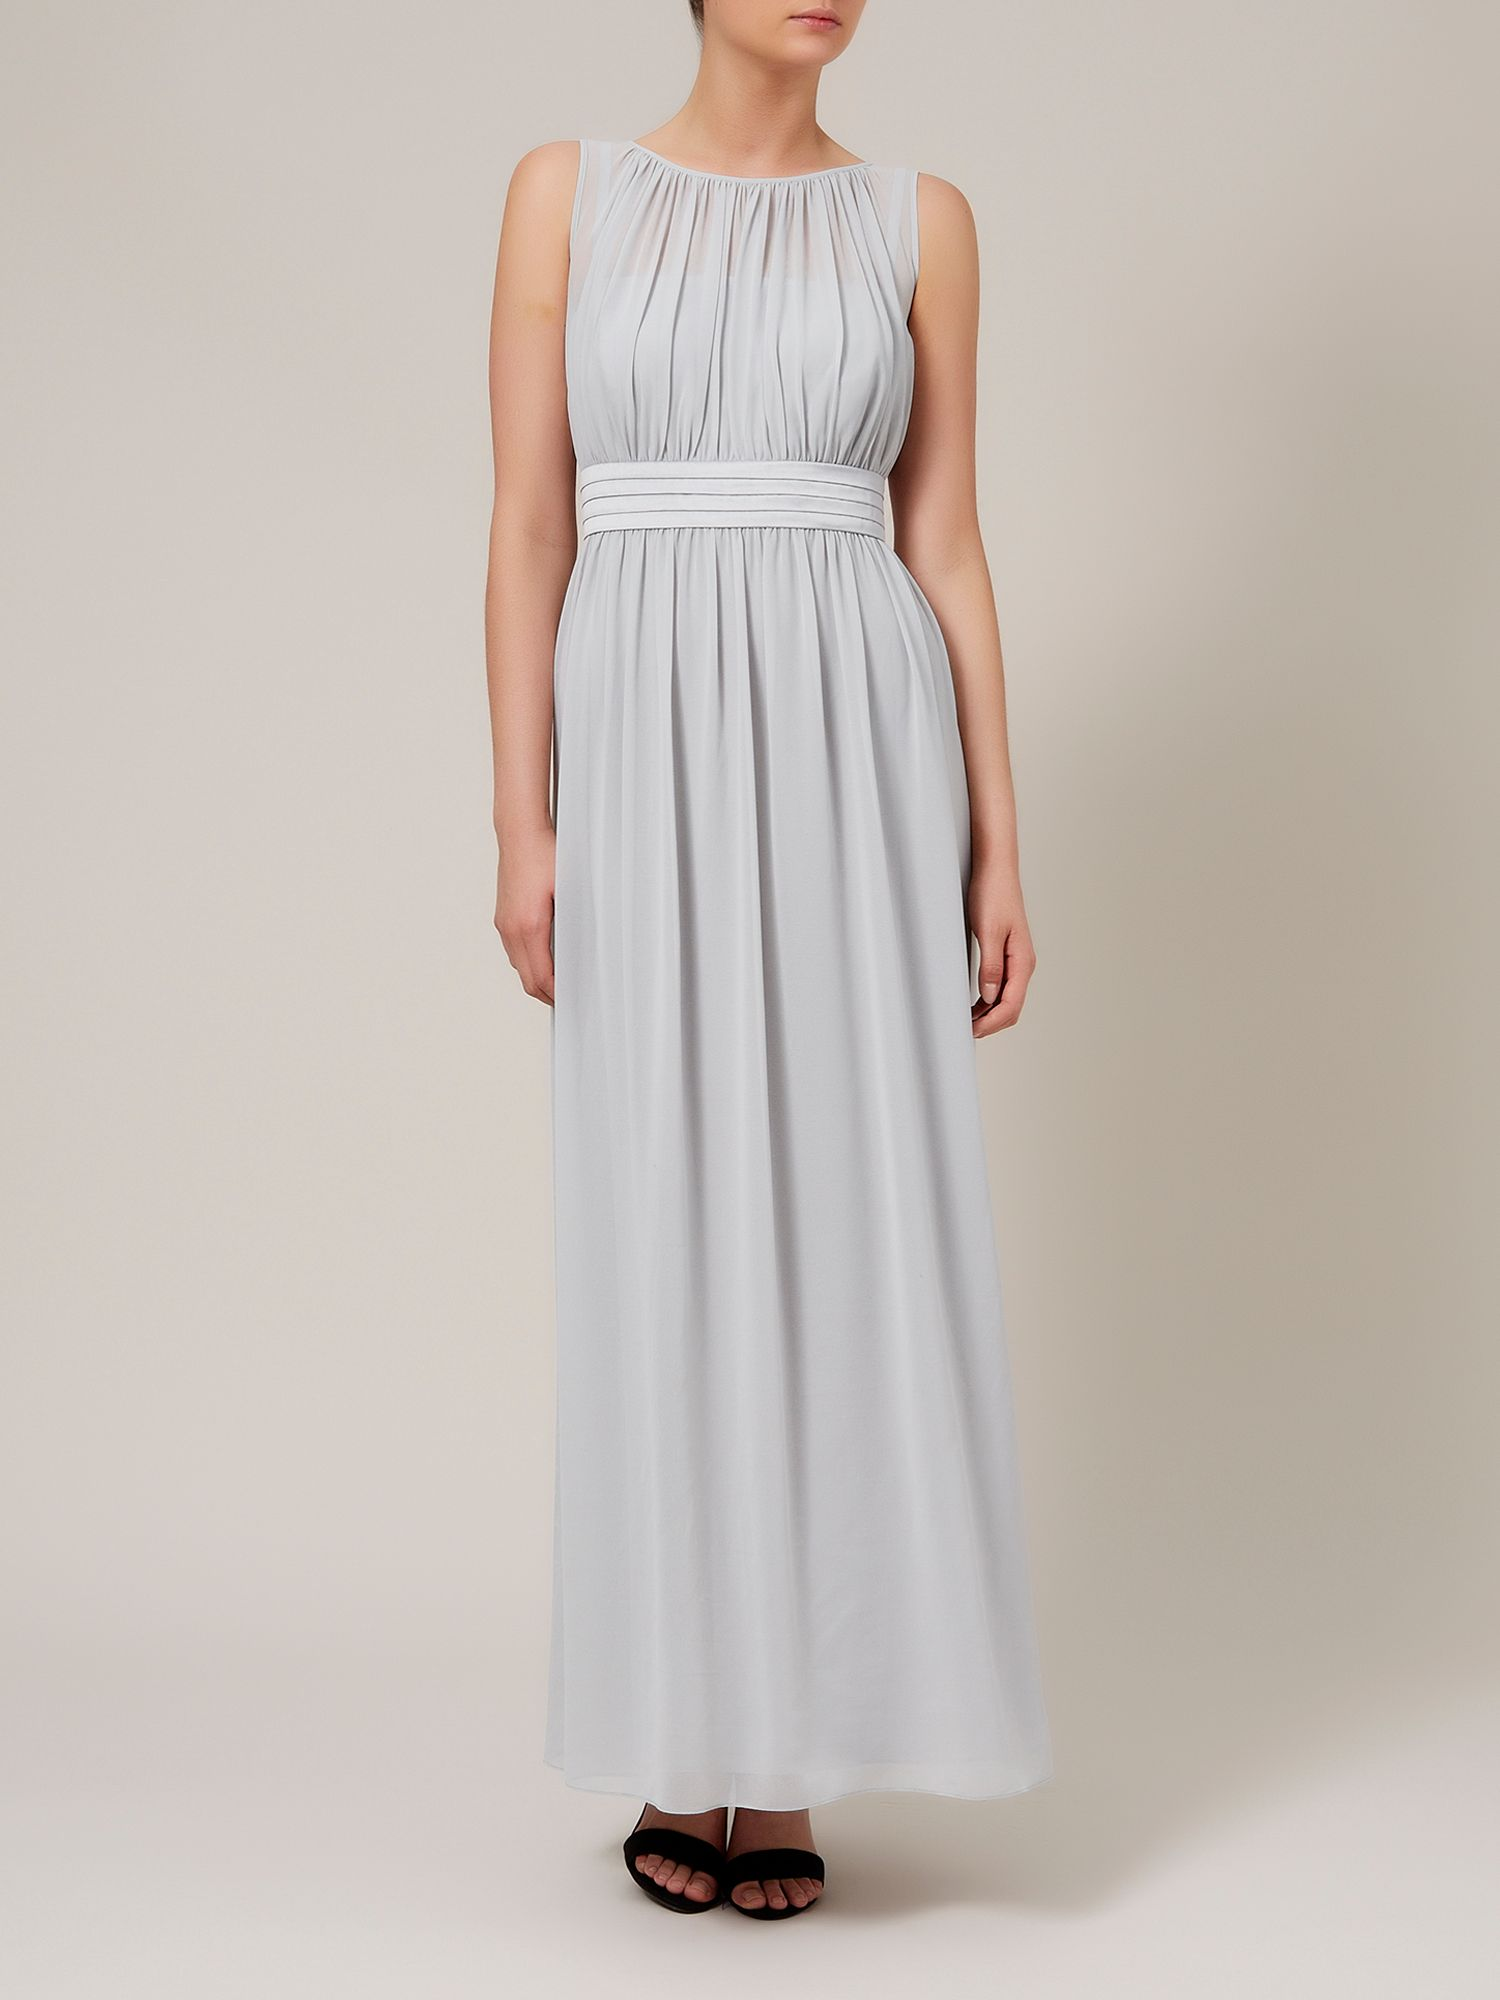 Ruched chiffon maxi dress